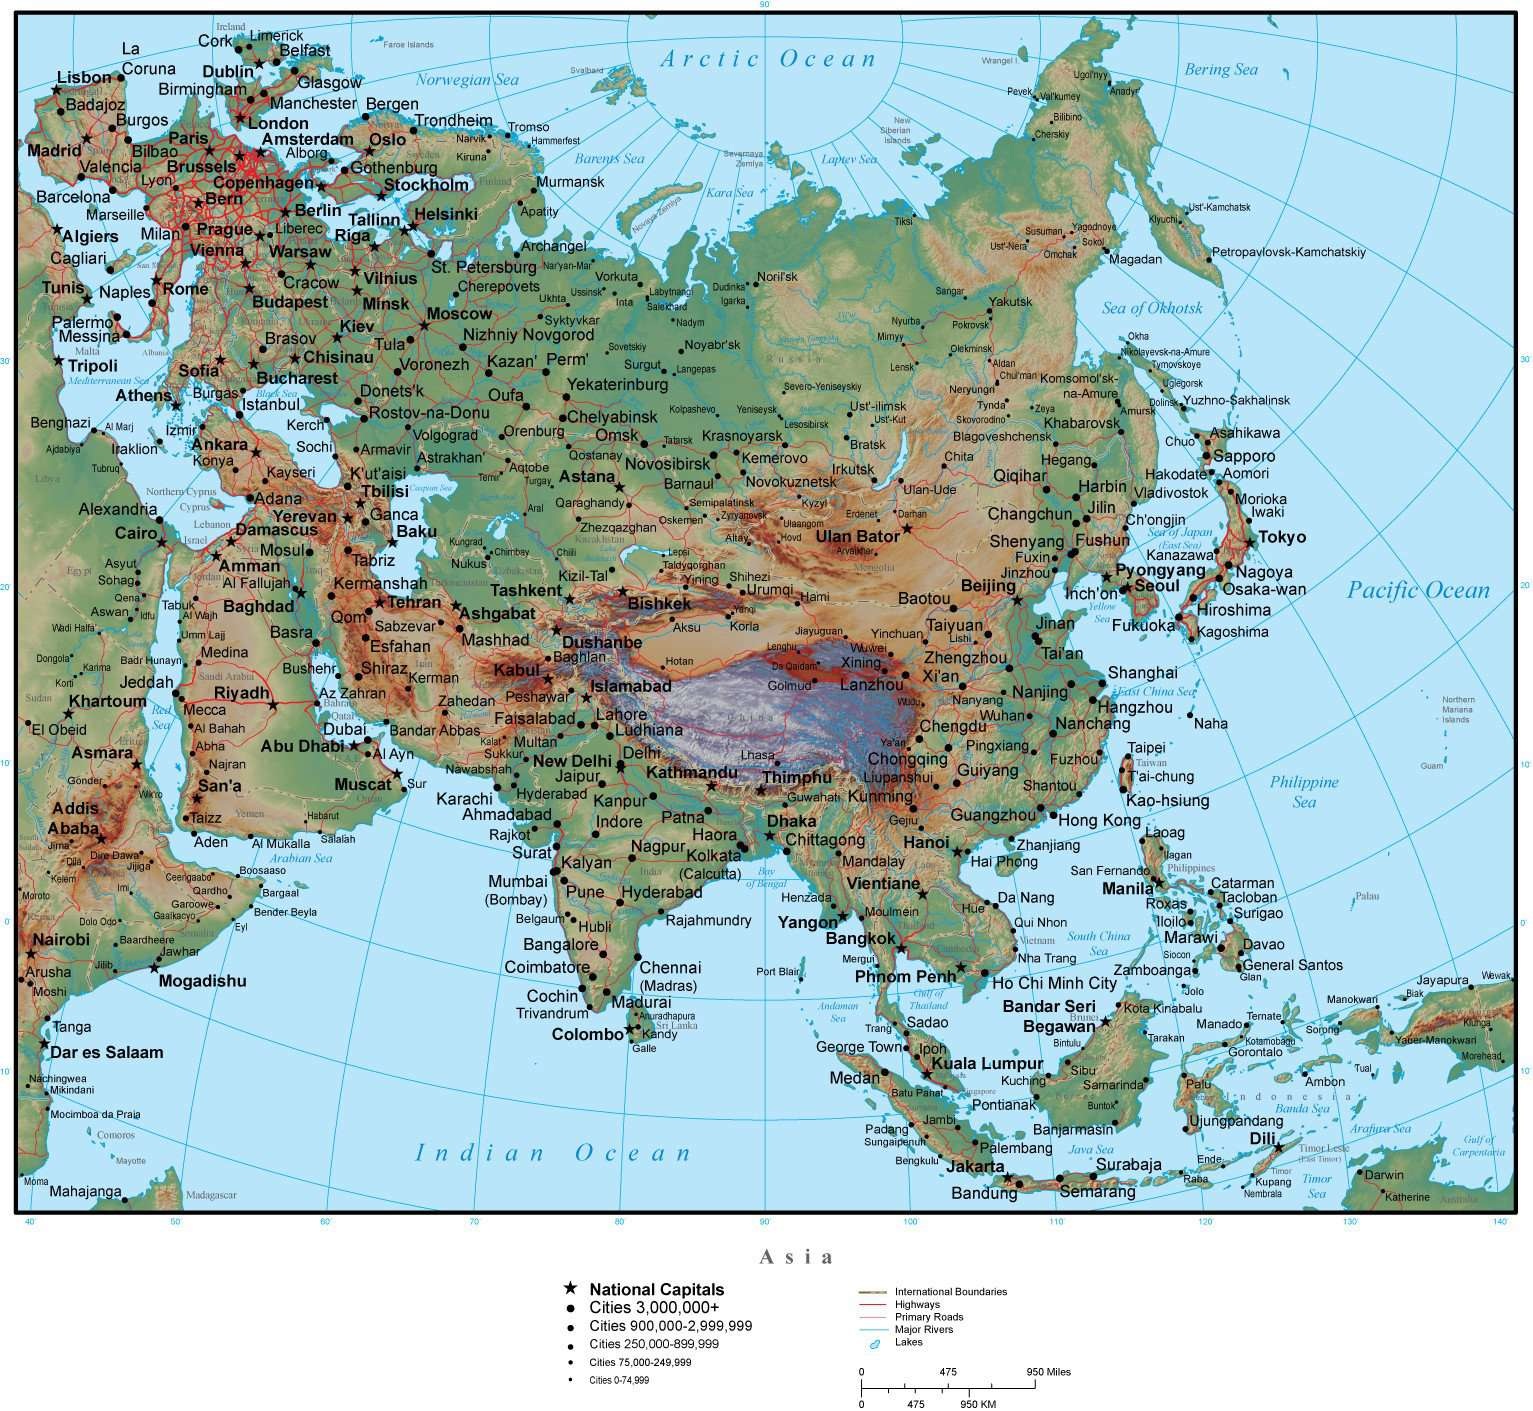 Asia Map Plus Terrain with Countries, Capitals, Cities, Roads, and Water  Features